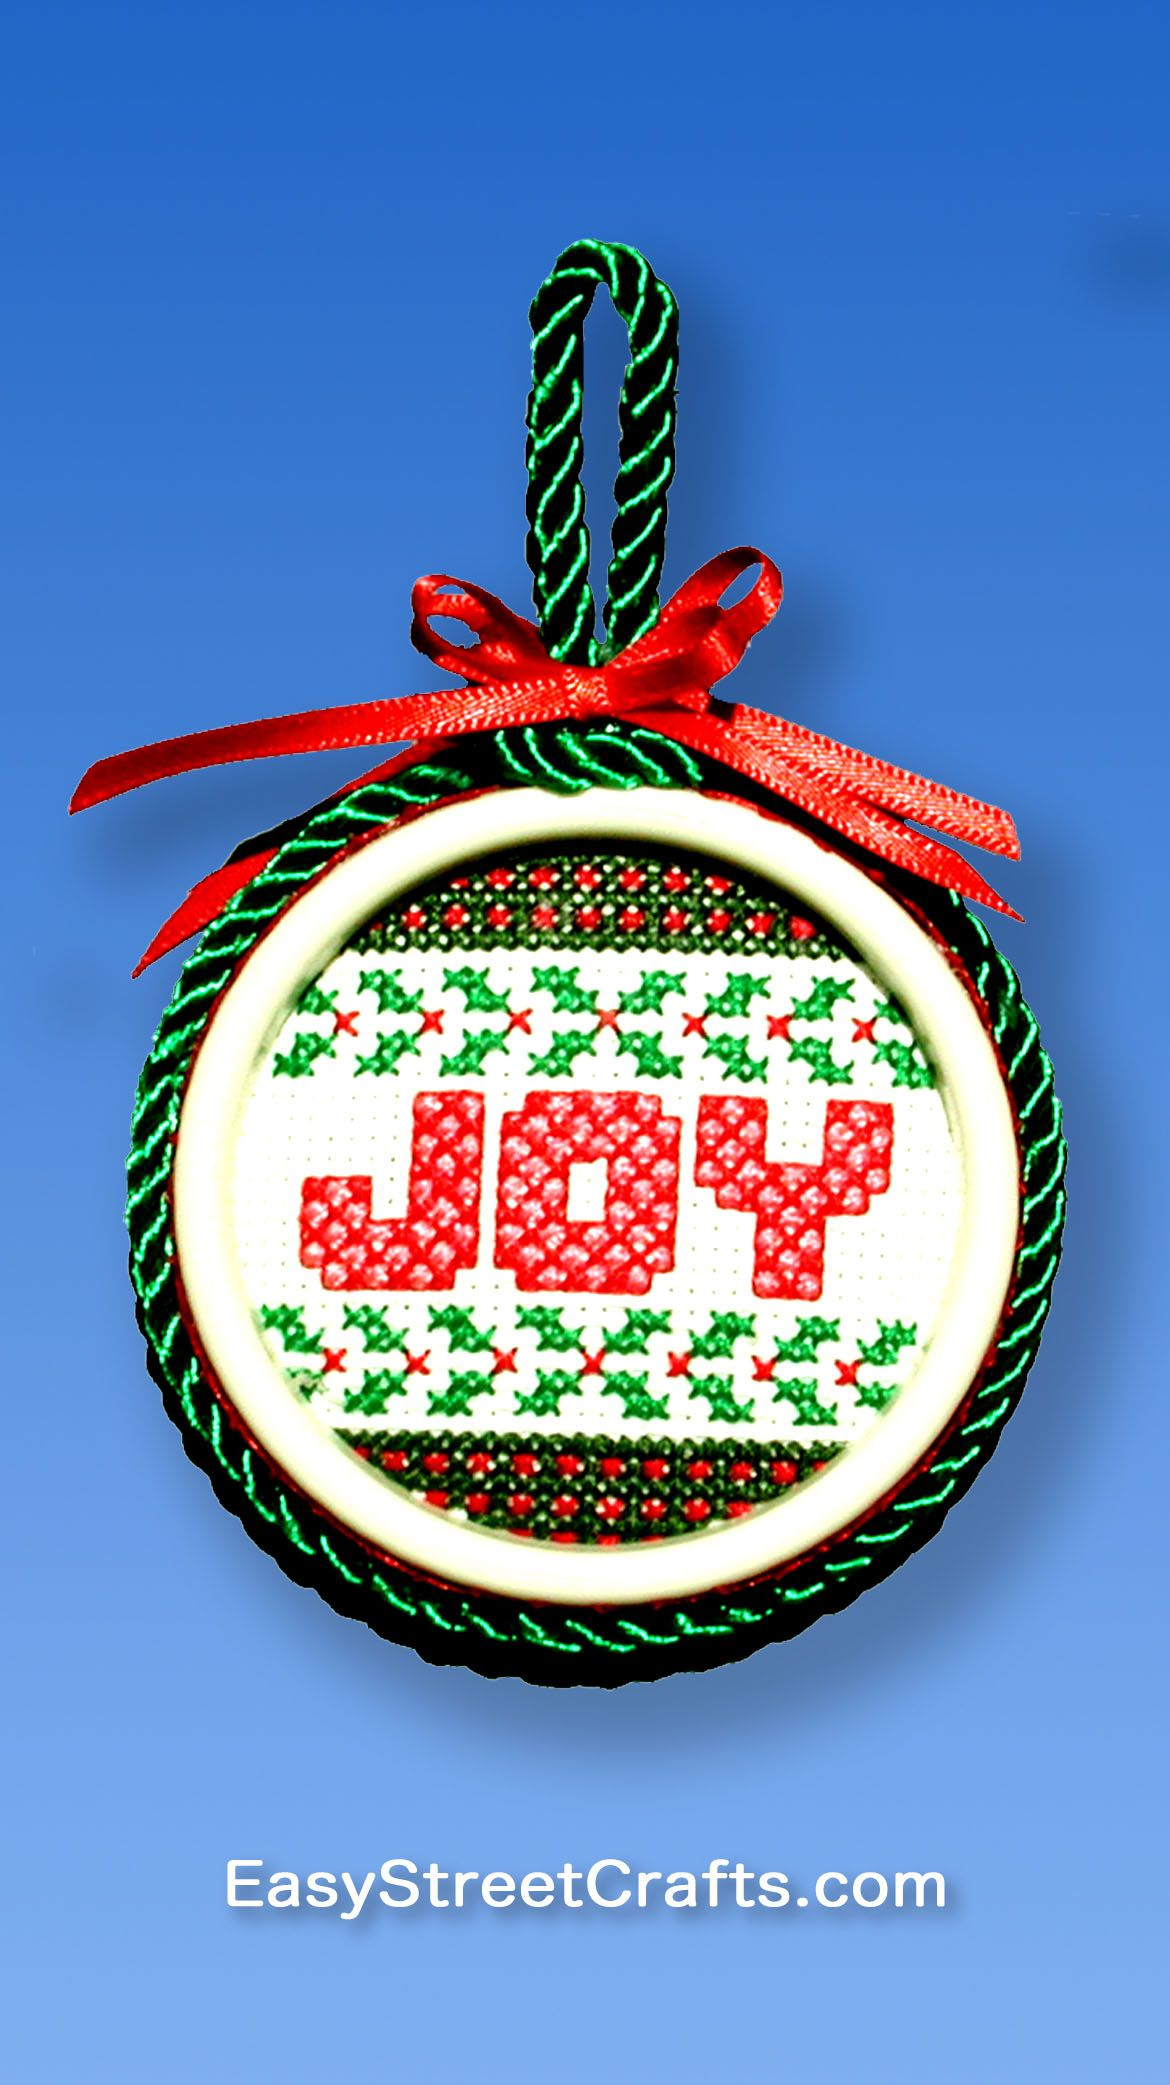 JOY TO THE WORLD . . . . . | ORNAMENT FRAMES & DESIGNS FOR ALL ...